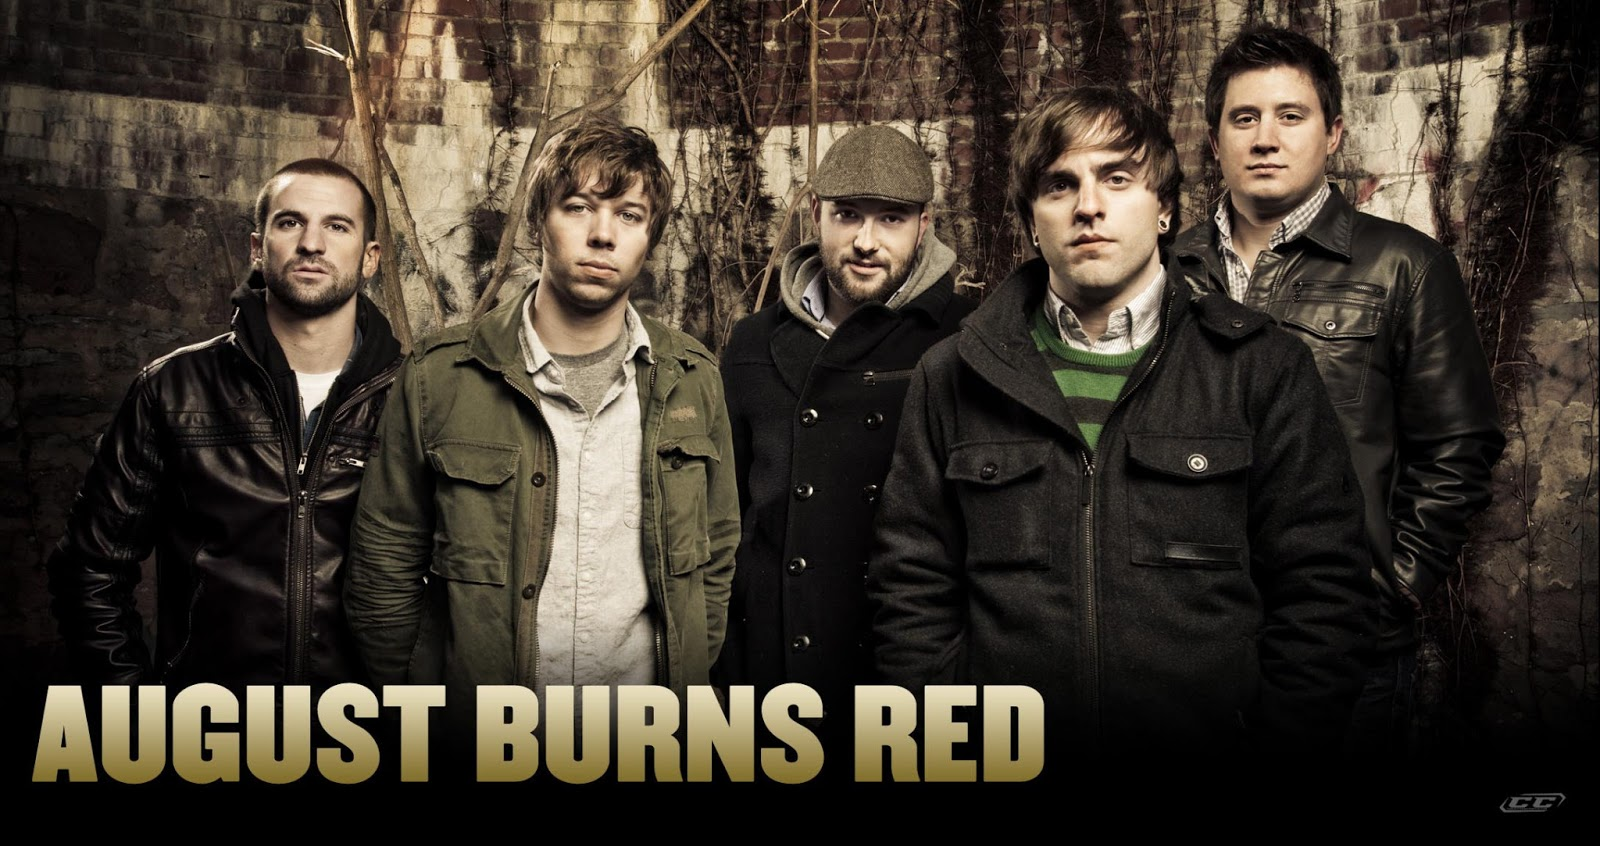 August-Burns-Red--Rescue-&-Restore-2013-Biography-and-History